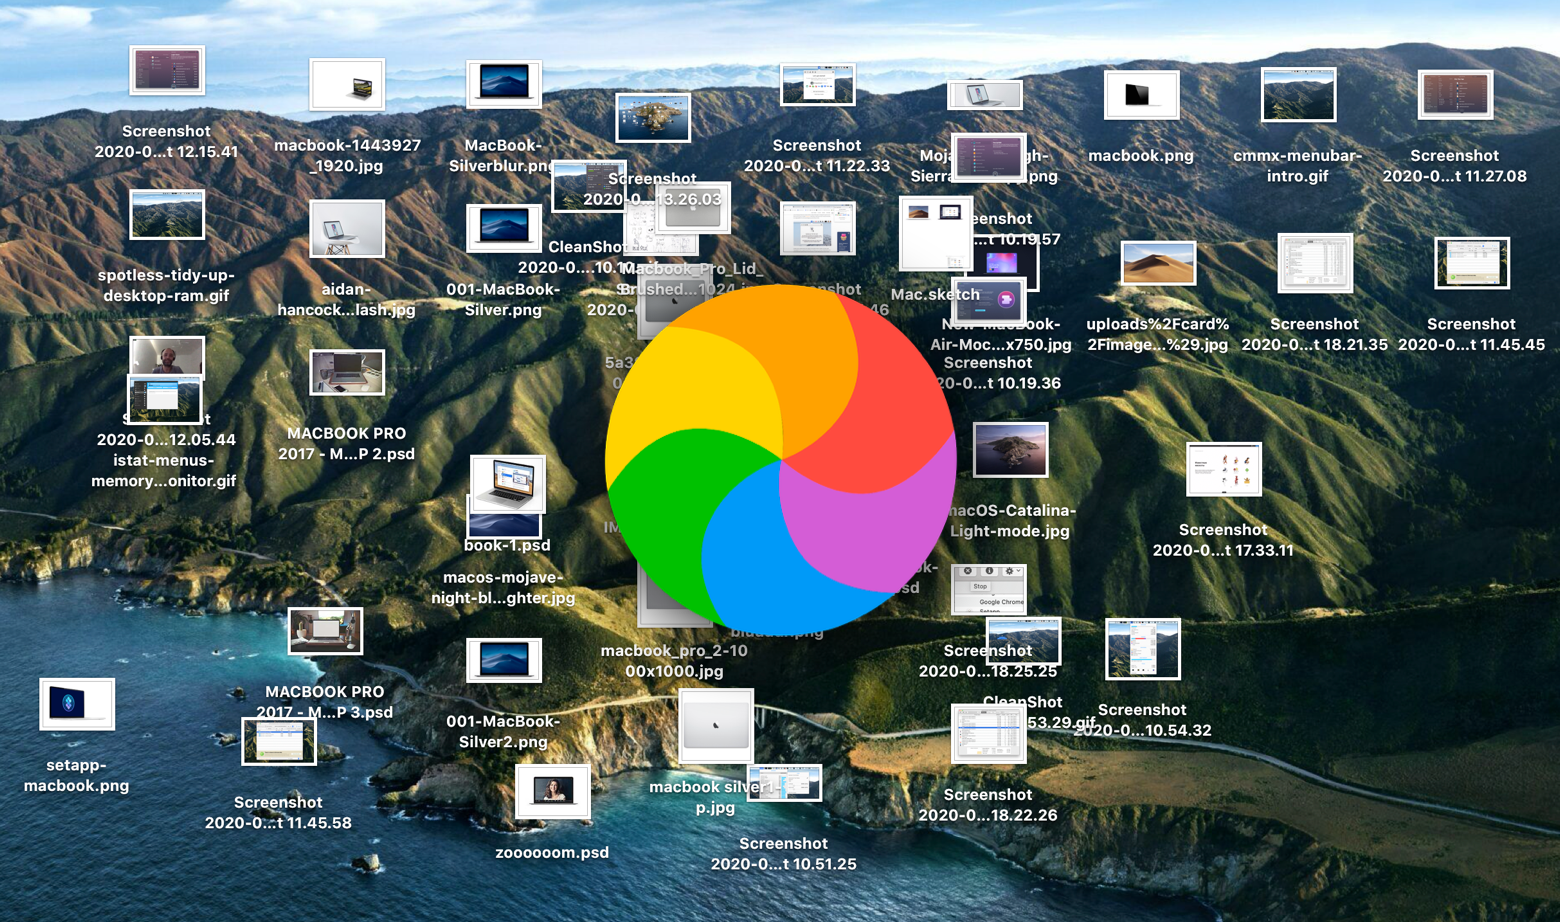 Cluttered desktop with too much junk